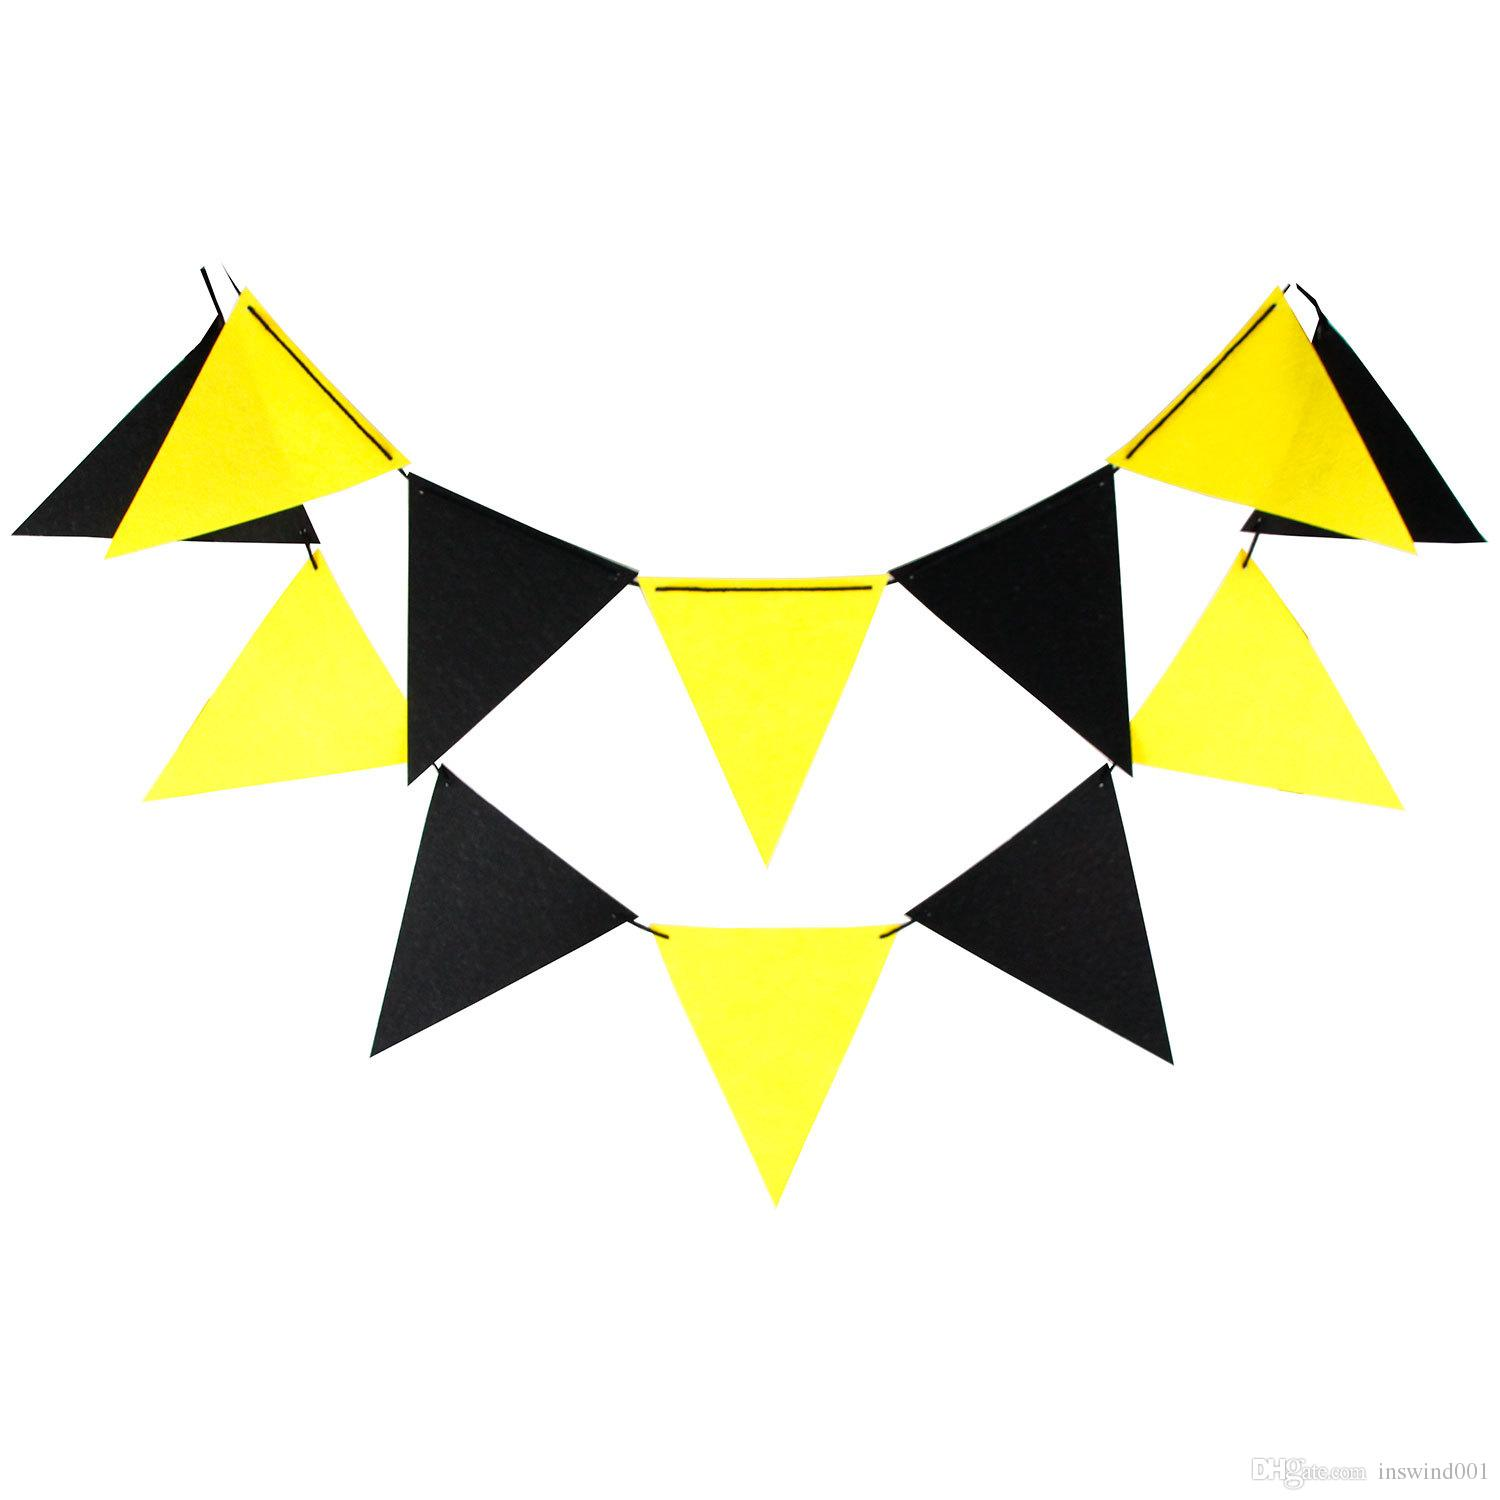 Black and yellow 2019 clipart graphic freeuse download Felt Cloth Flags Banner Garland Pennant Black Yellow For Children s  Birthday Graduation Hanging Decoration Suppliers 12 Pcs 3M graphic freeuse download